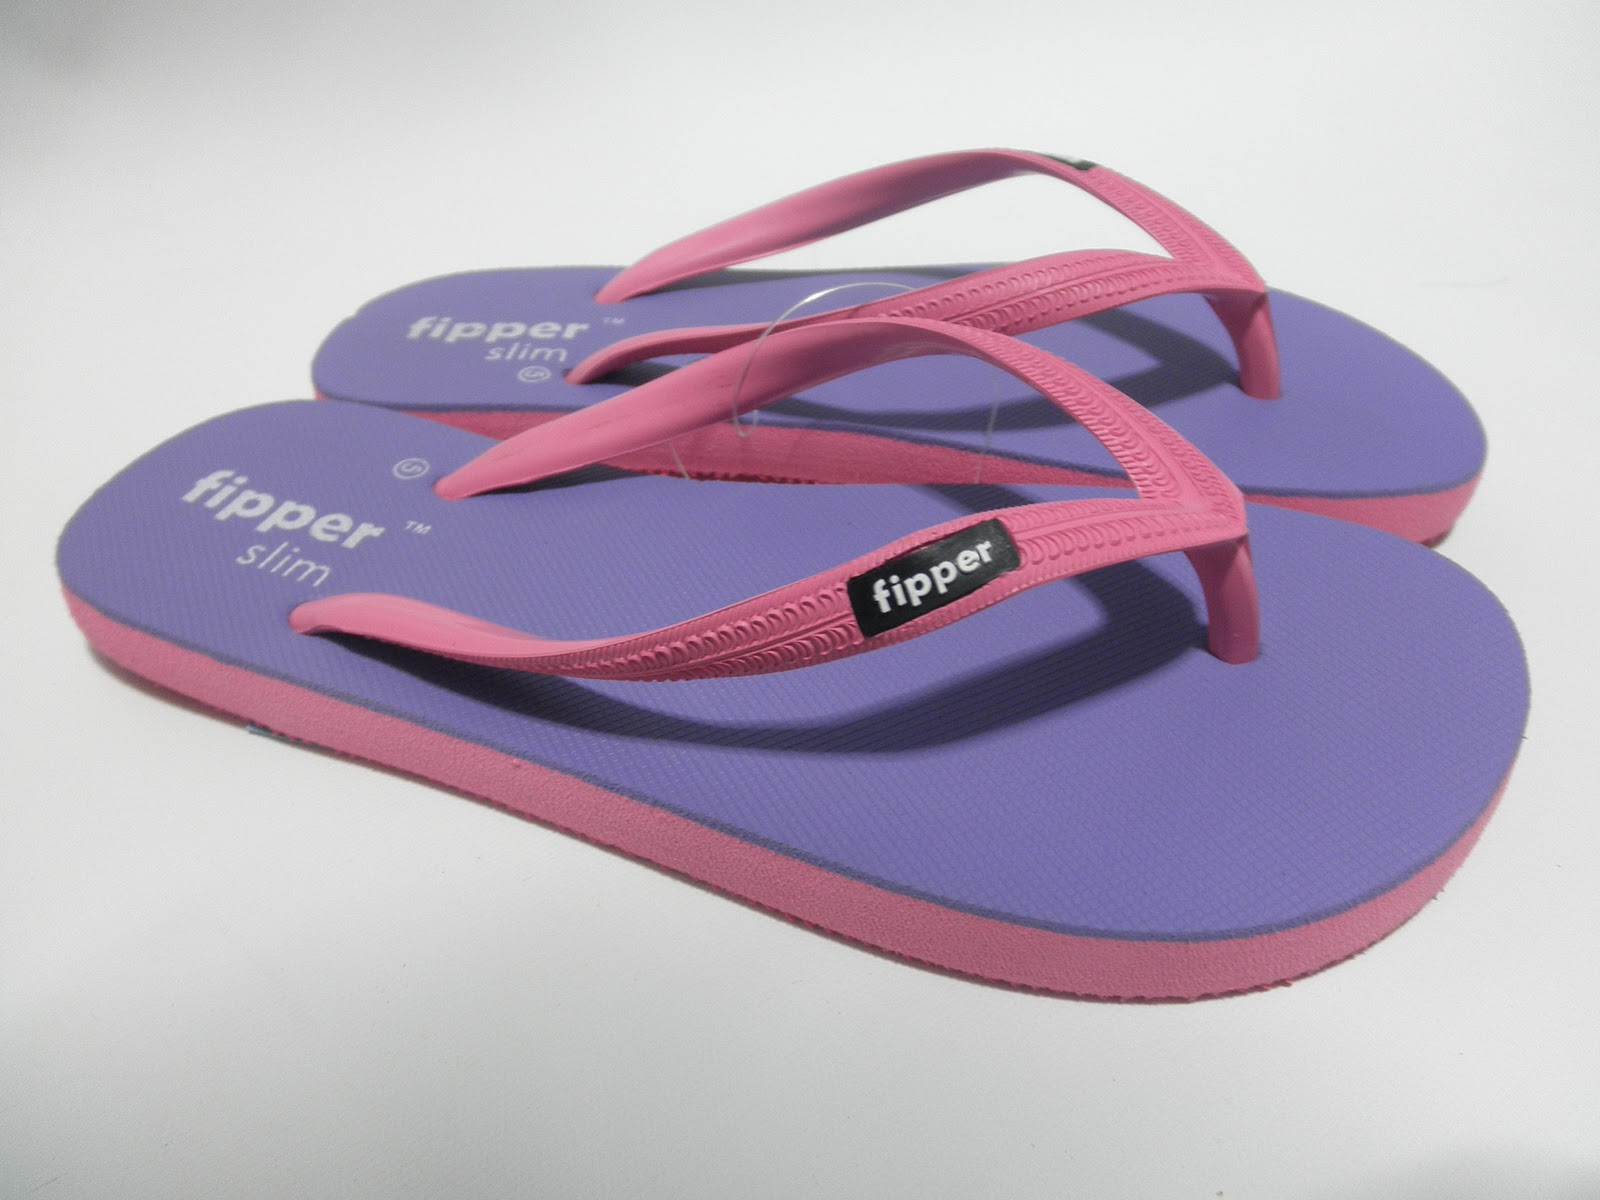 Fipper Slim Beauty-Light Purple Slipper